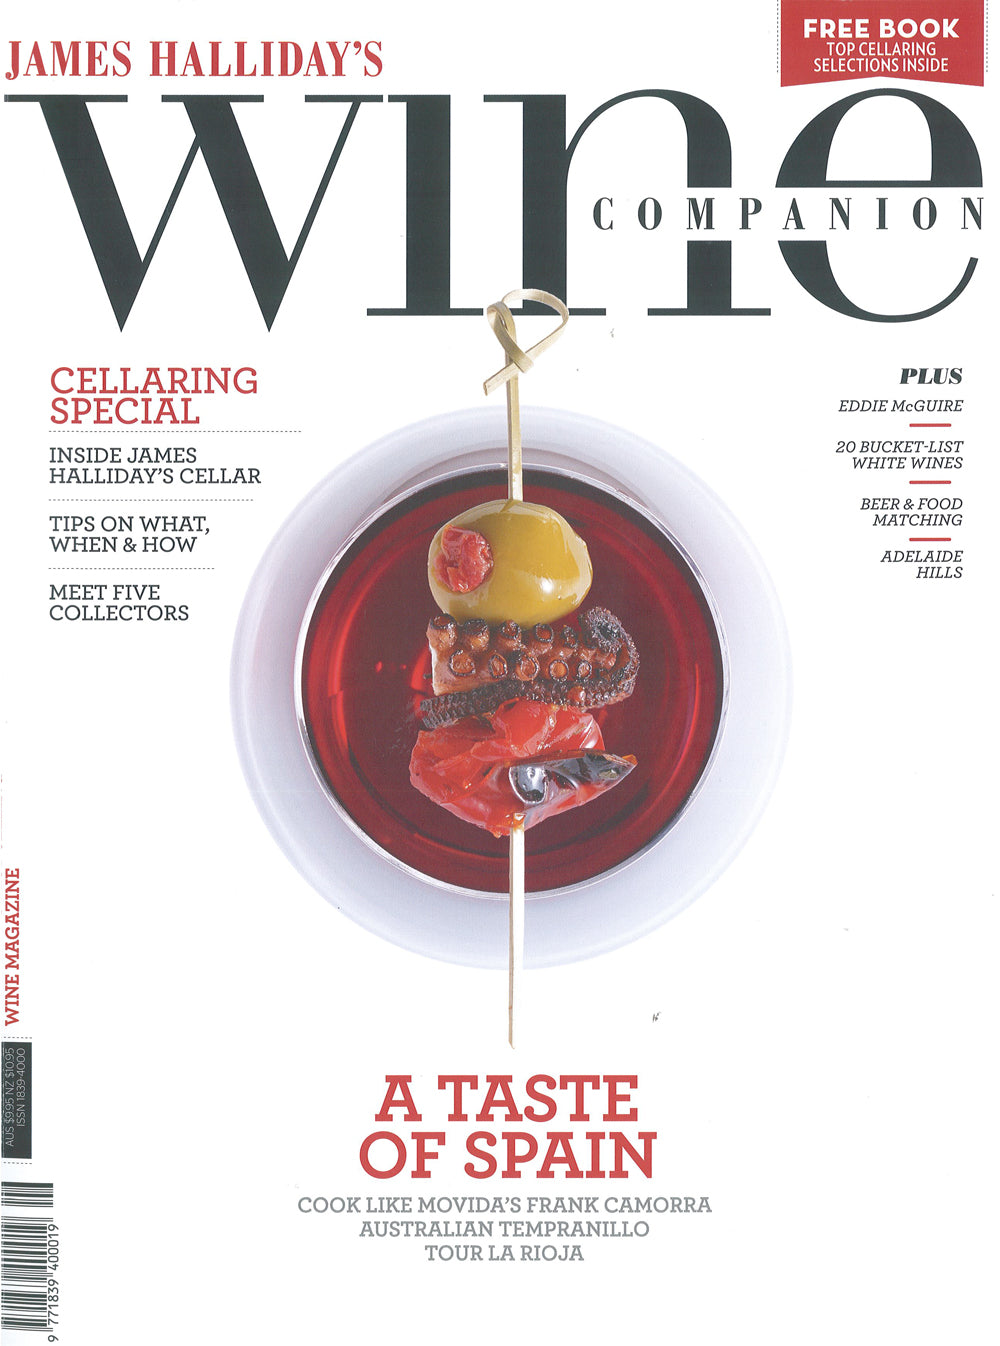 James Halidays Wine Companion June July 2014 cover-STACT Wine Racks